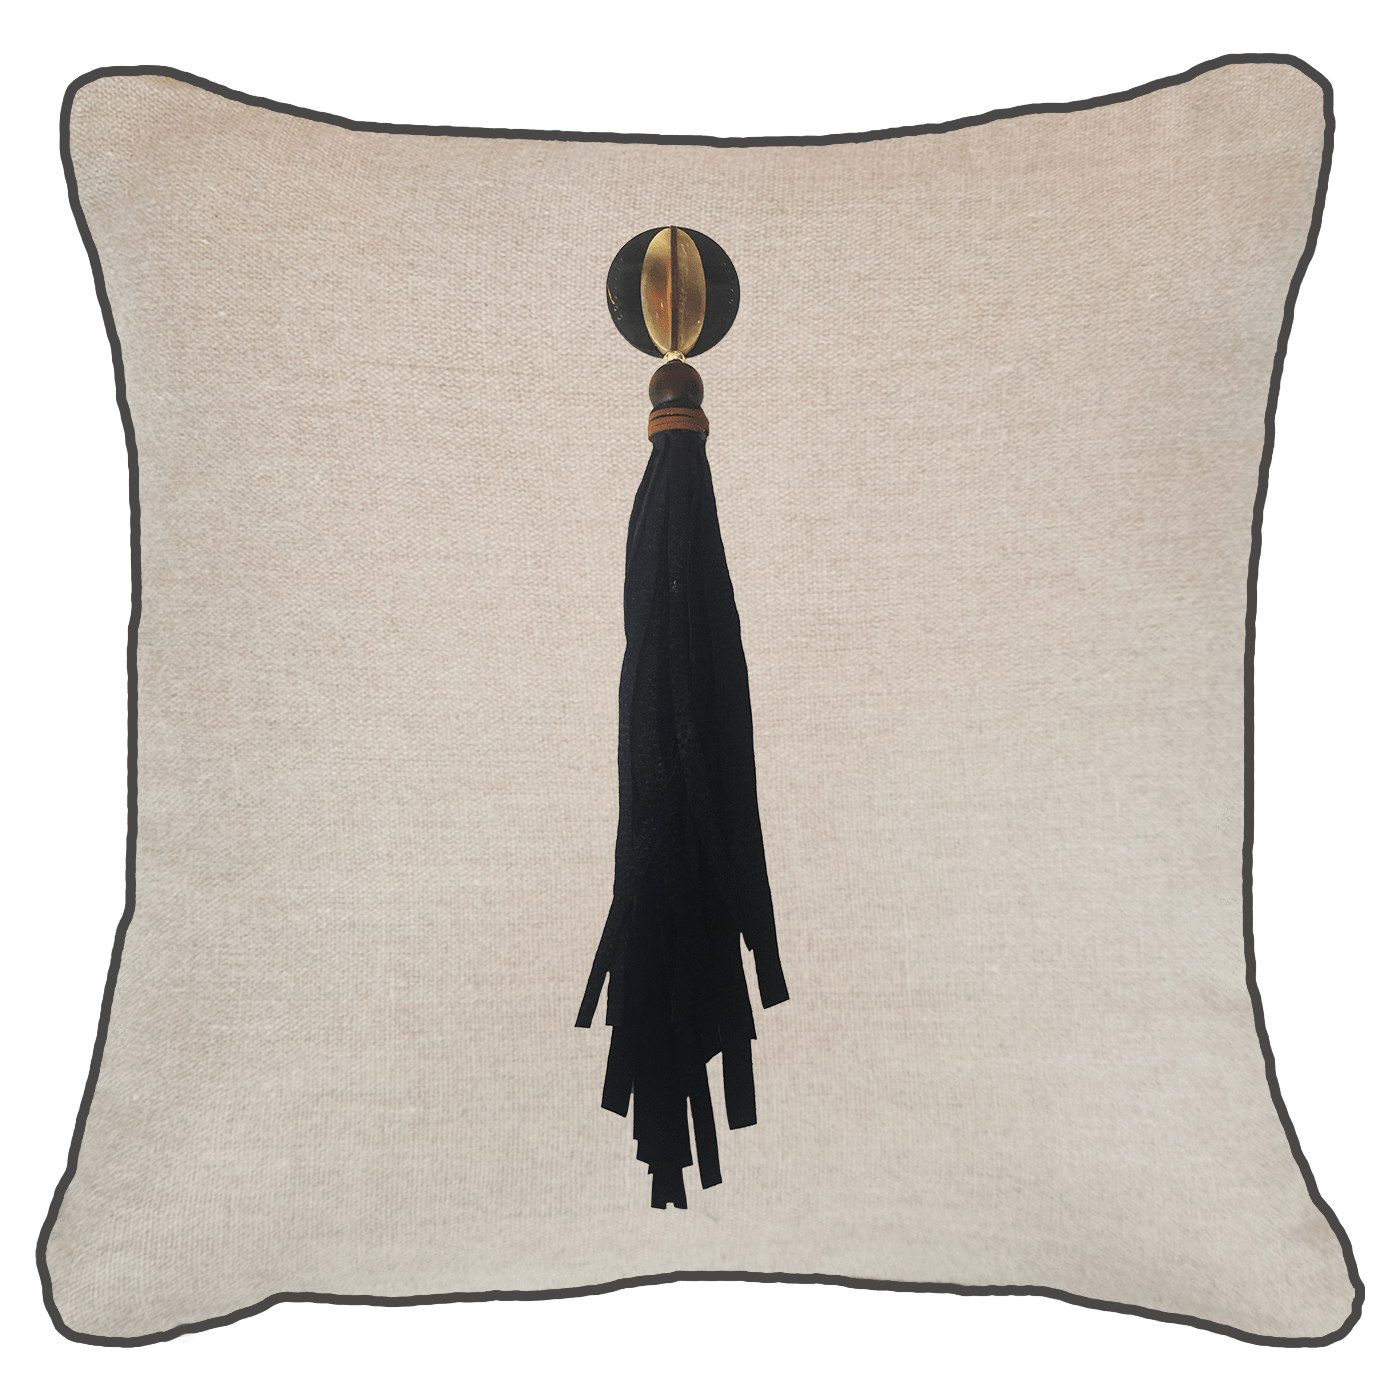 Bandhini Homewear Design Lounge Cushion Natural / 22 x 22 Tassel Mex on Natural Linen Lounge Cushion 55 x 55 cm